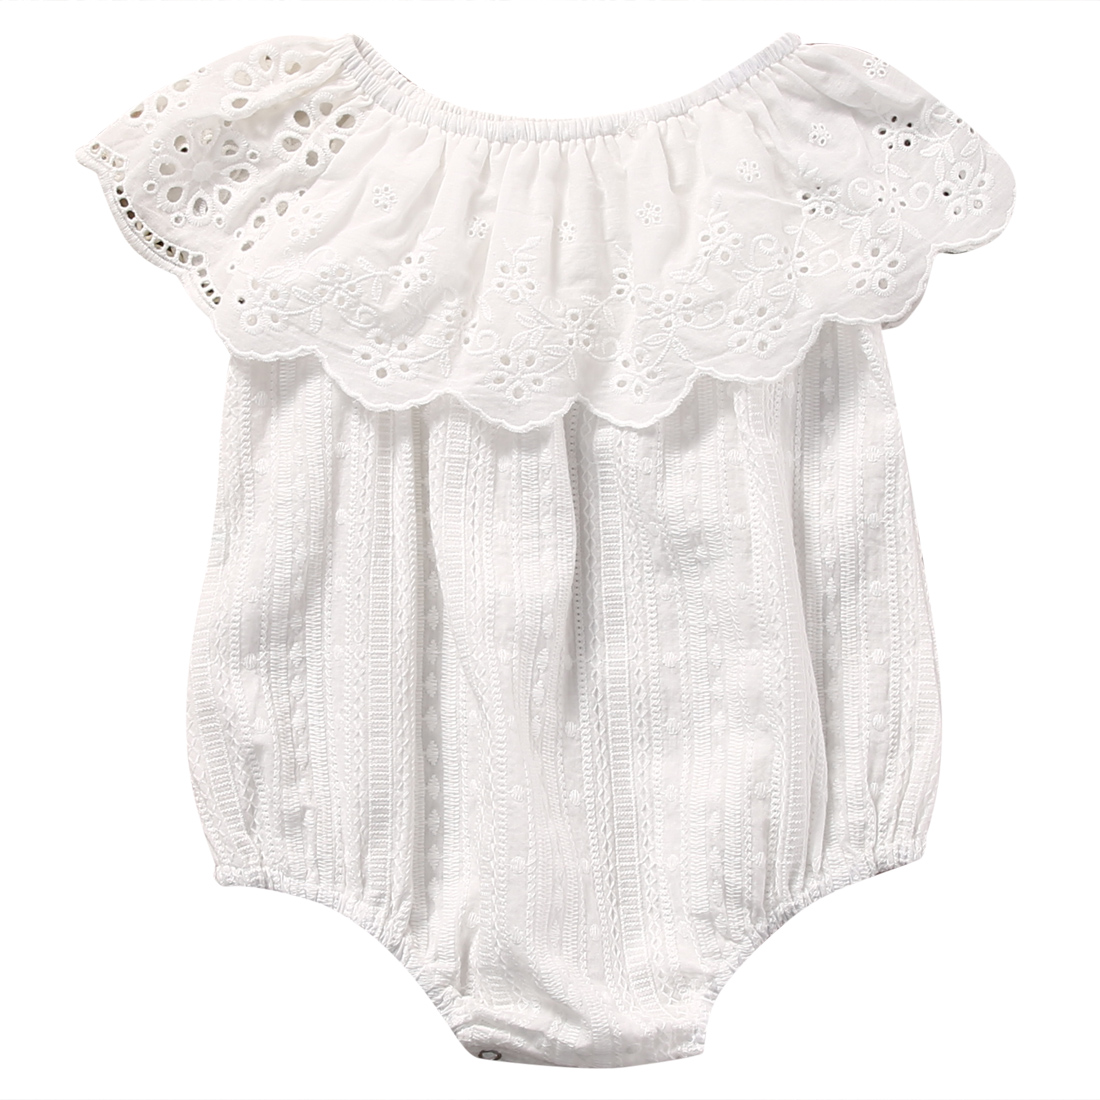 2017 New Cute Newborn Baby Girl Romper Clothes White Lace Playsuit Jumpsuit Outfit Summer Bebes Sunsuit 0-24M 2017 floral baby romper newborn baby girl clothes ruffles sleeve bodysuit headband 2pcs outfit bebek giyim sunsuit 0 24m